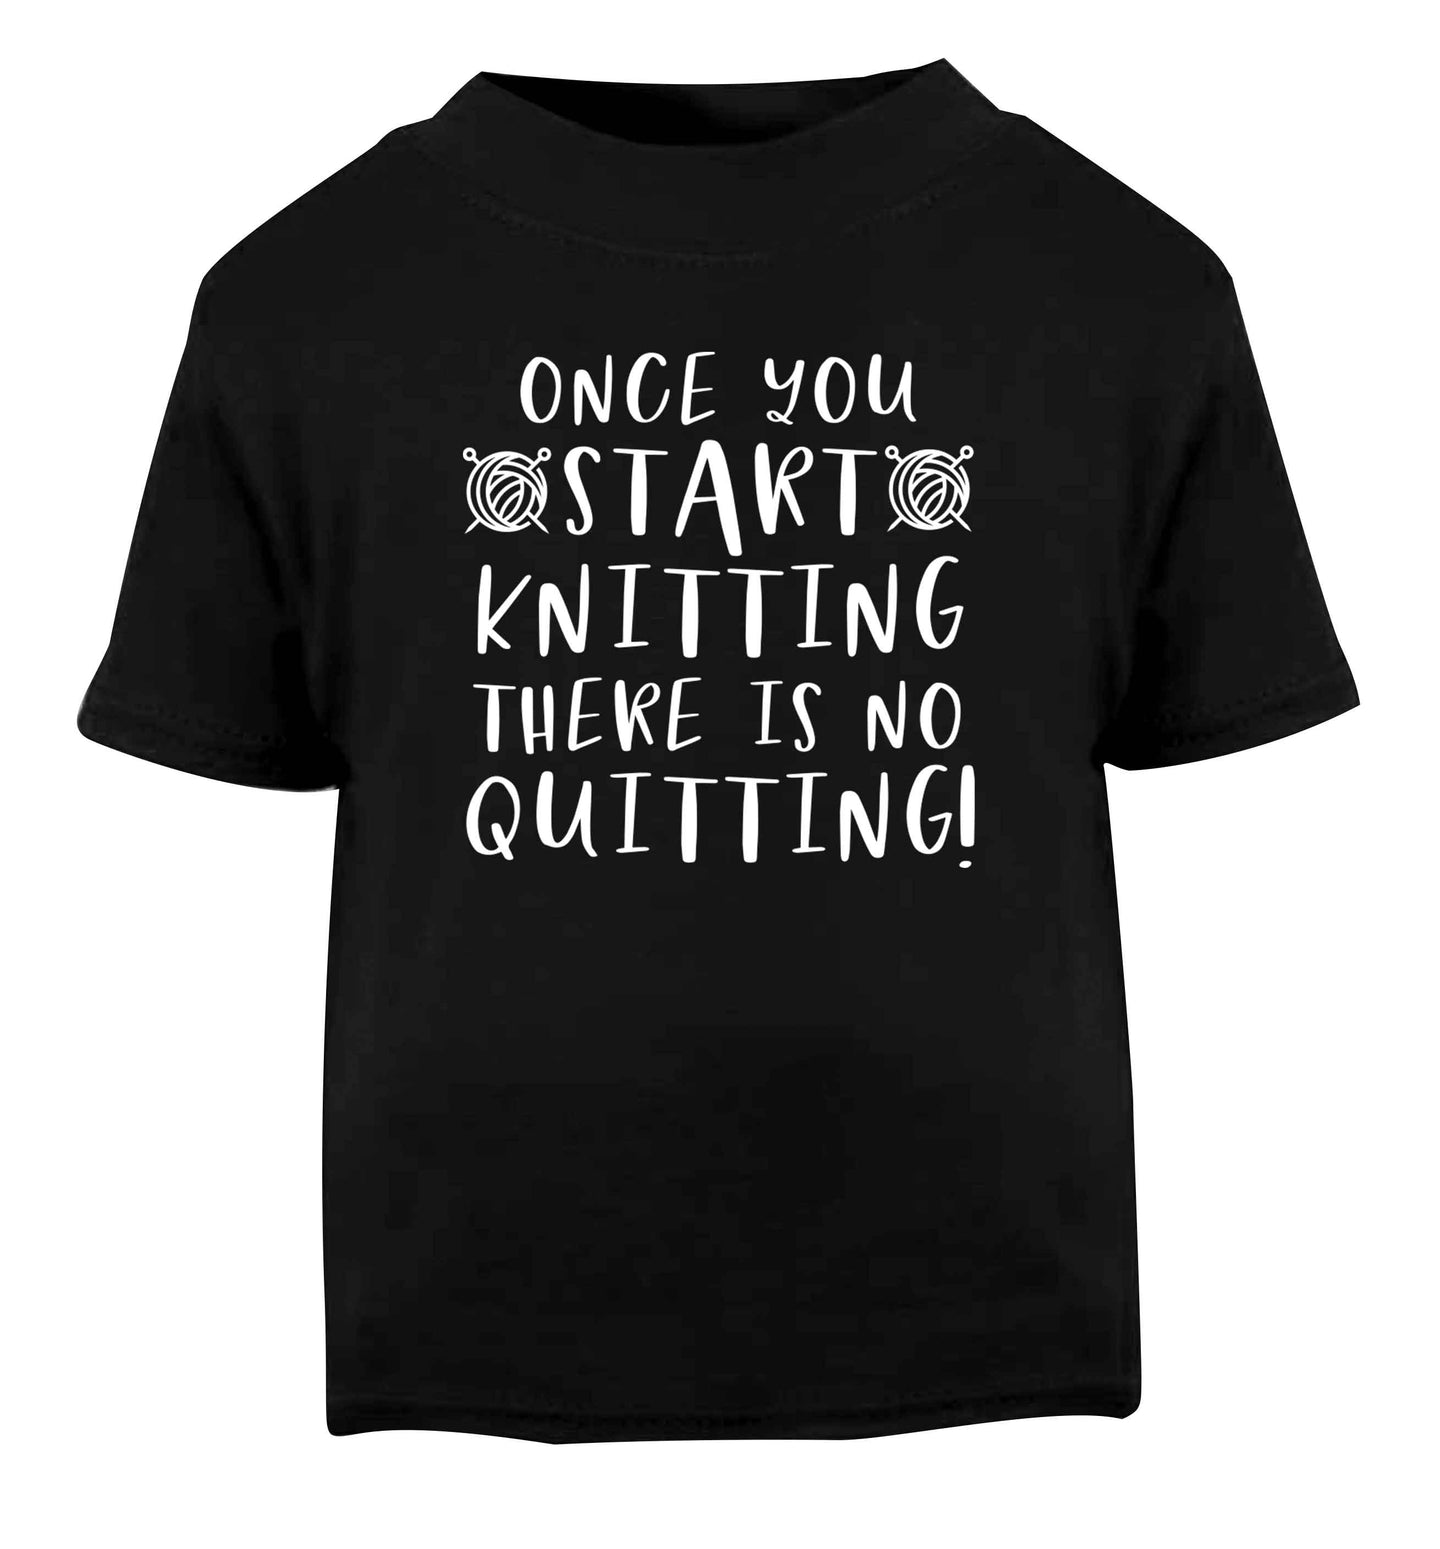 Once you start knitting there is no quitting! Black Baby Toddler Tshirt 2 years